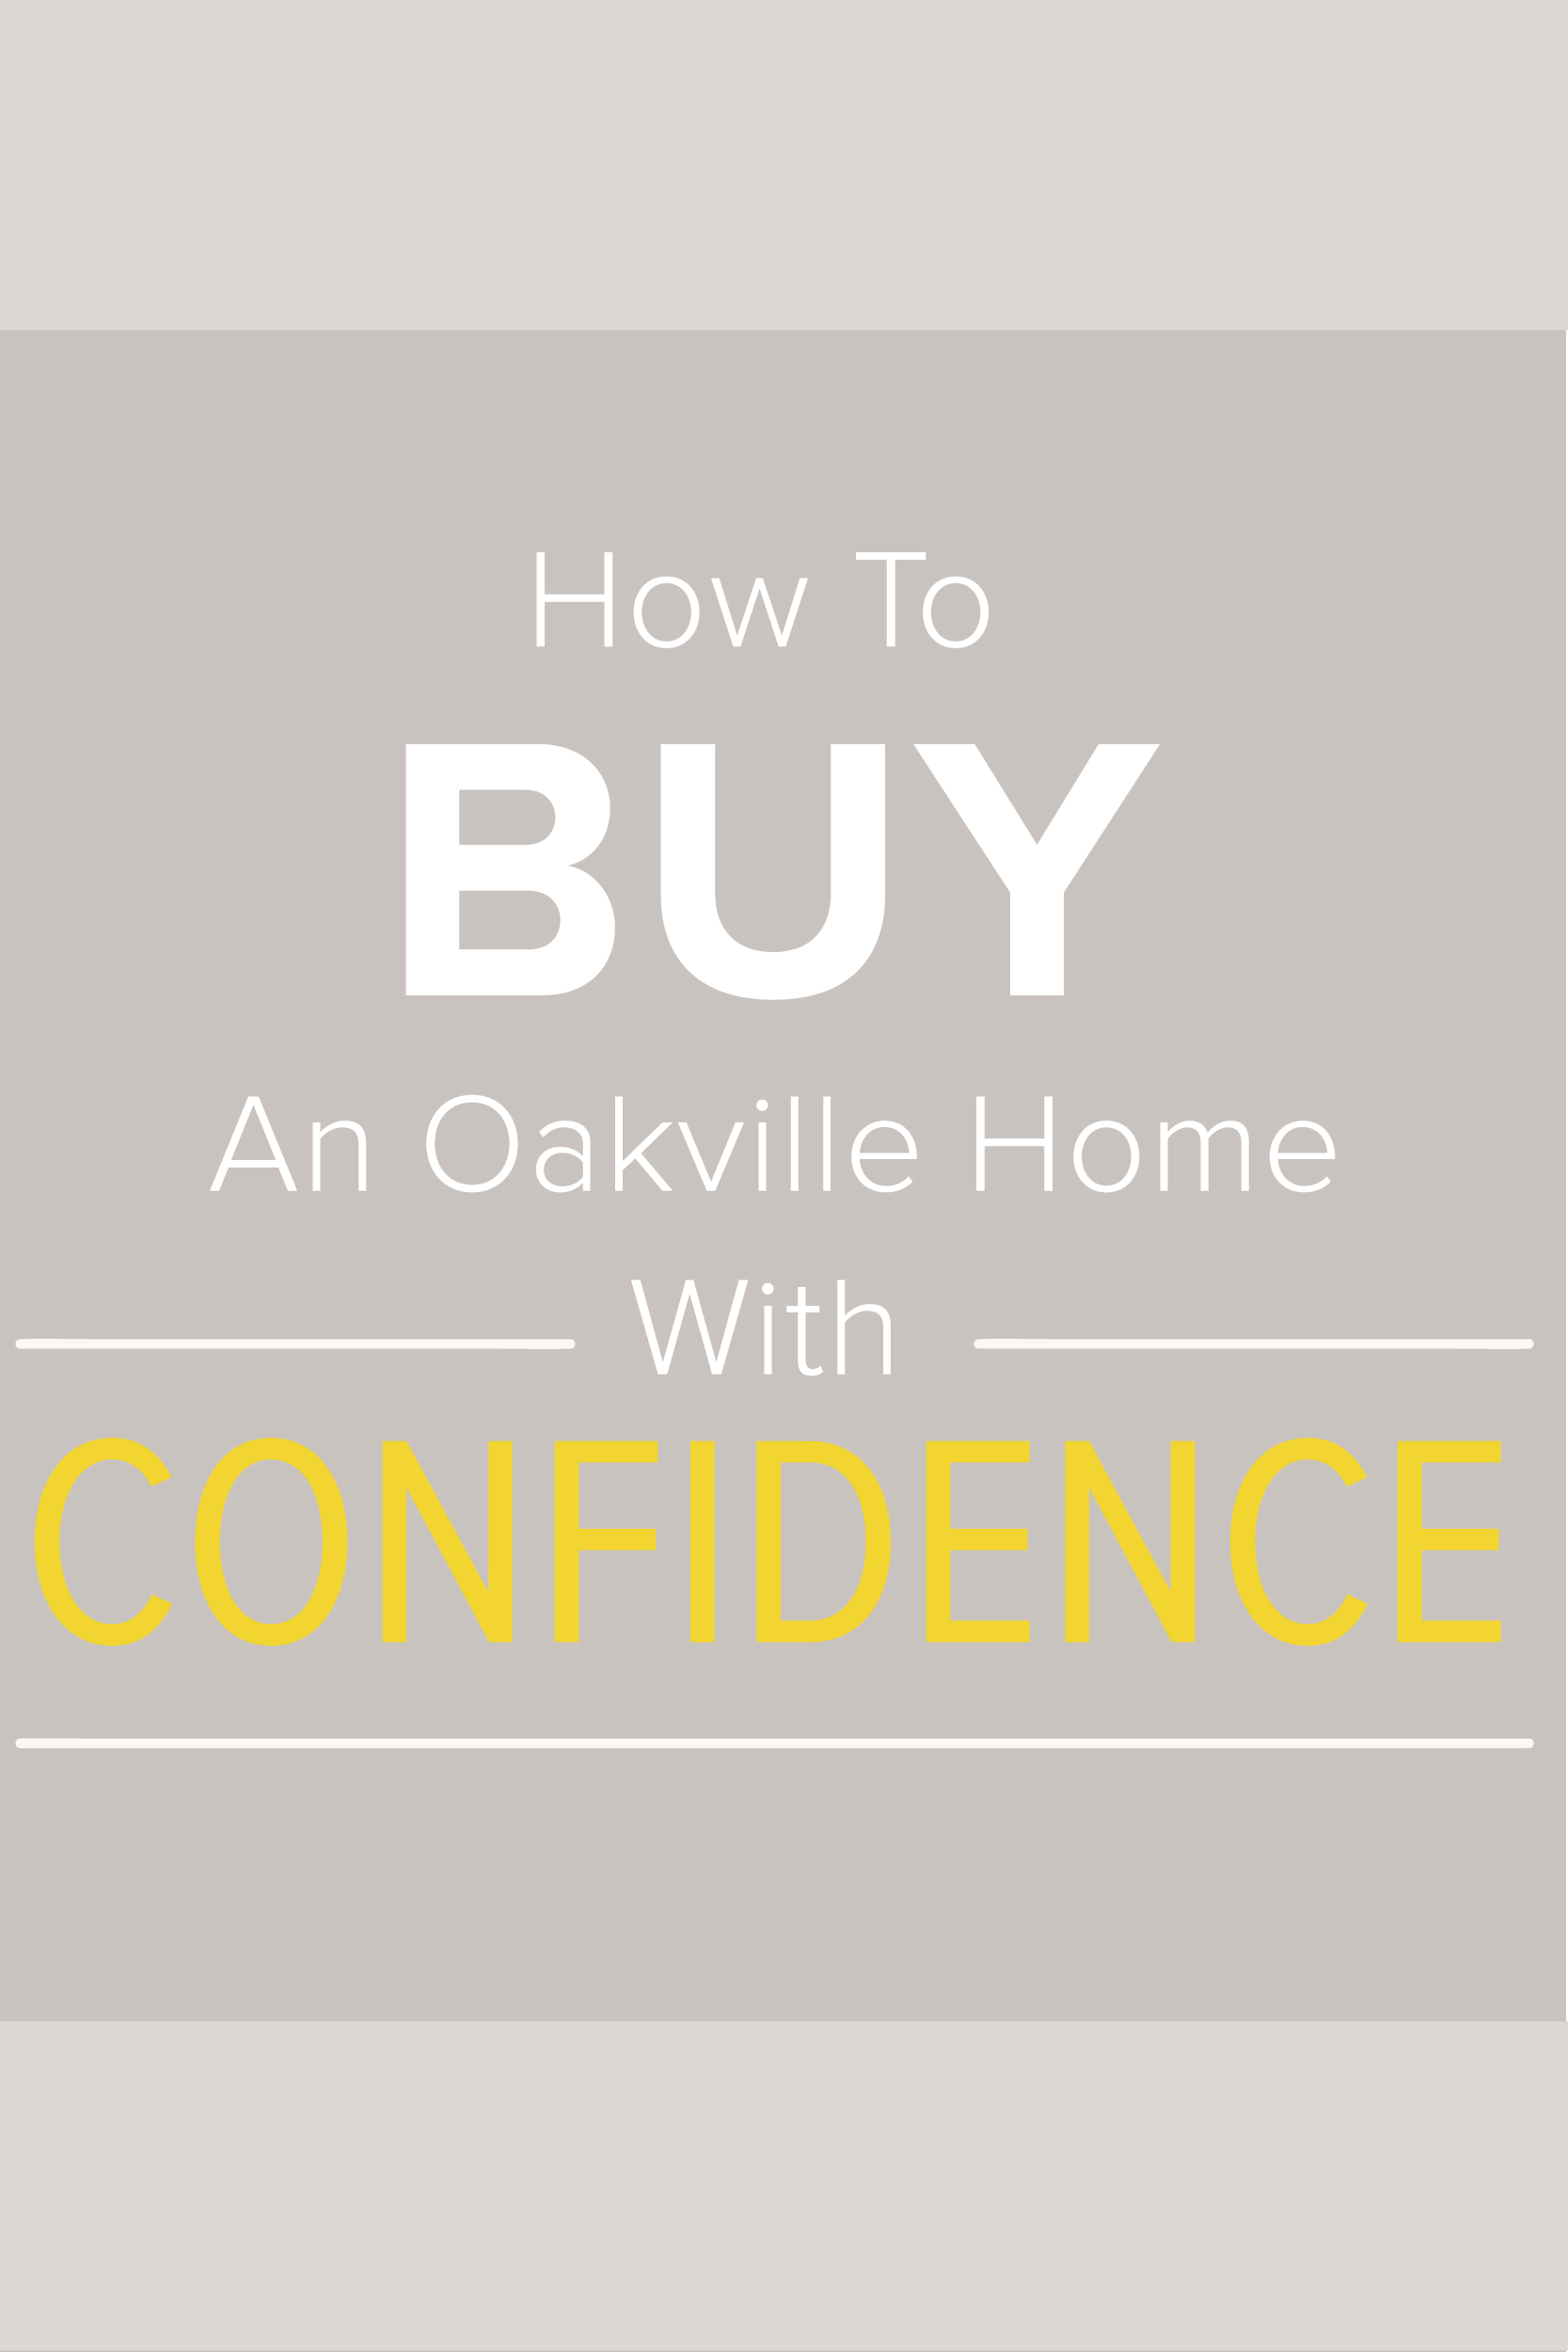 how-to-buy-an-oakville-home-with-confidence.jpg